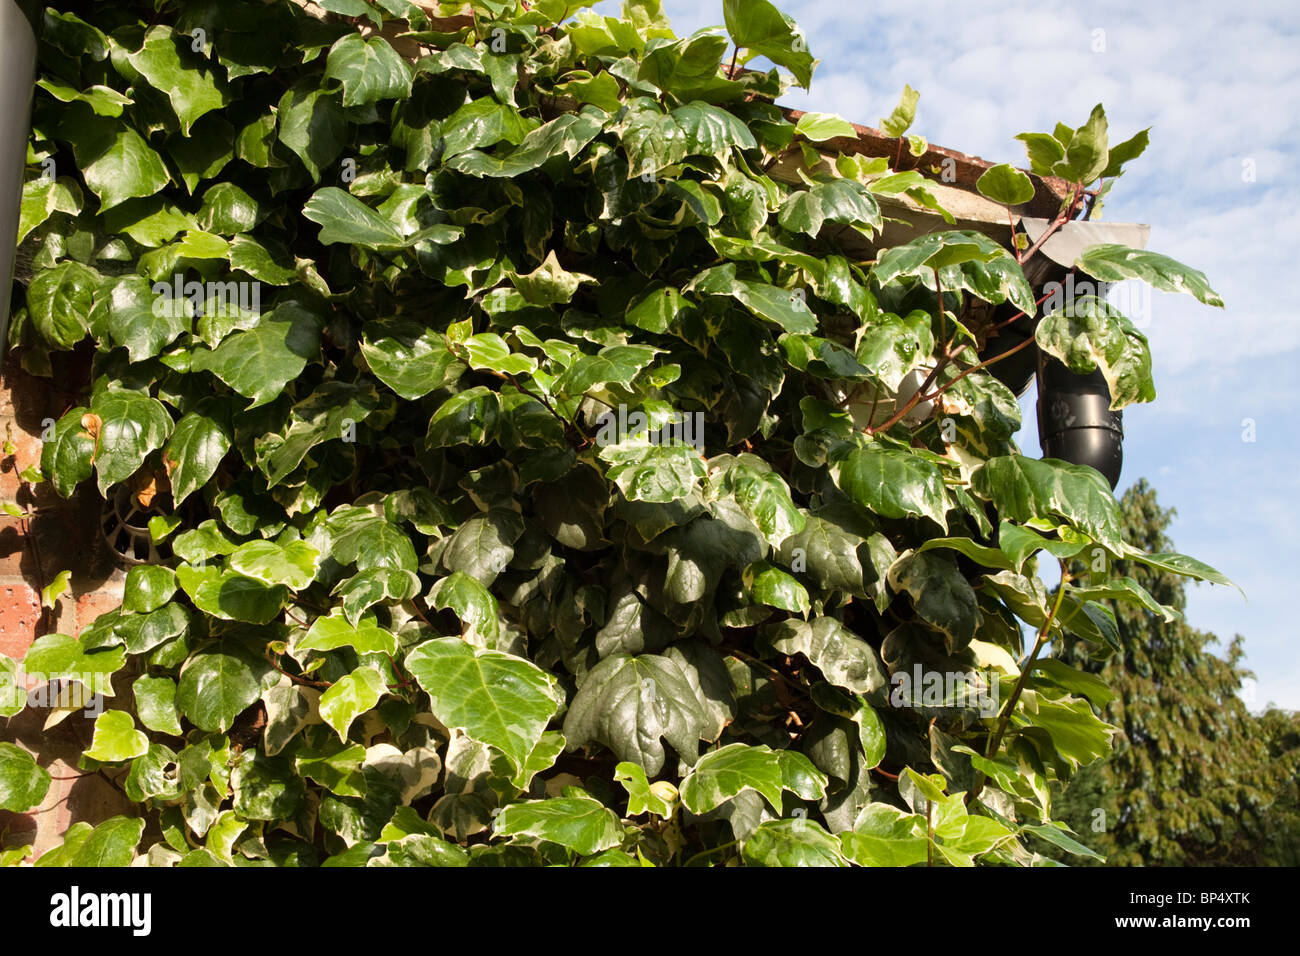 A kitchen wall covered in ivy growing over, and blocking, a gas boiler flue - Stock Image